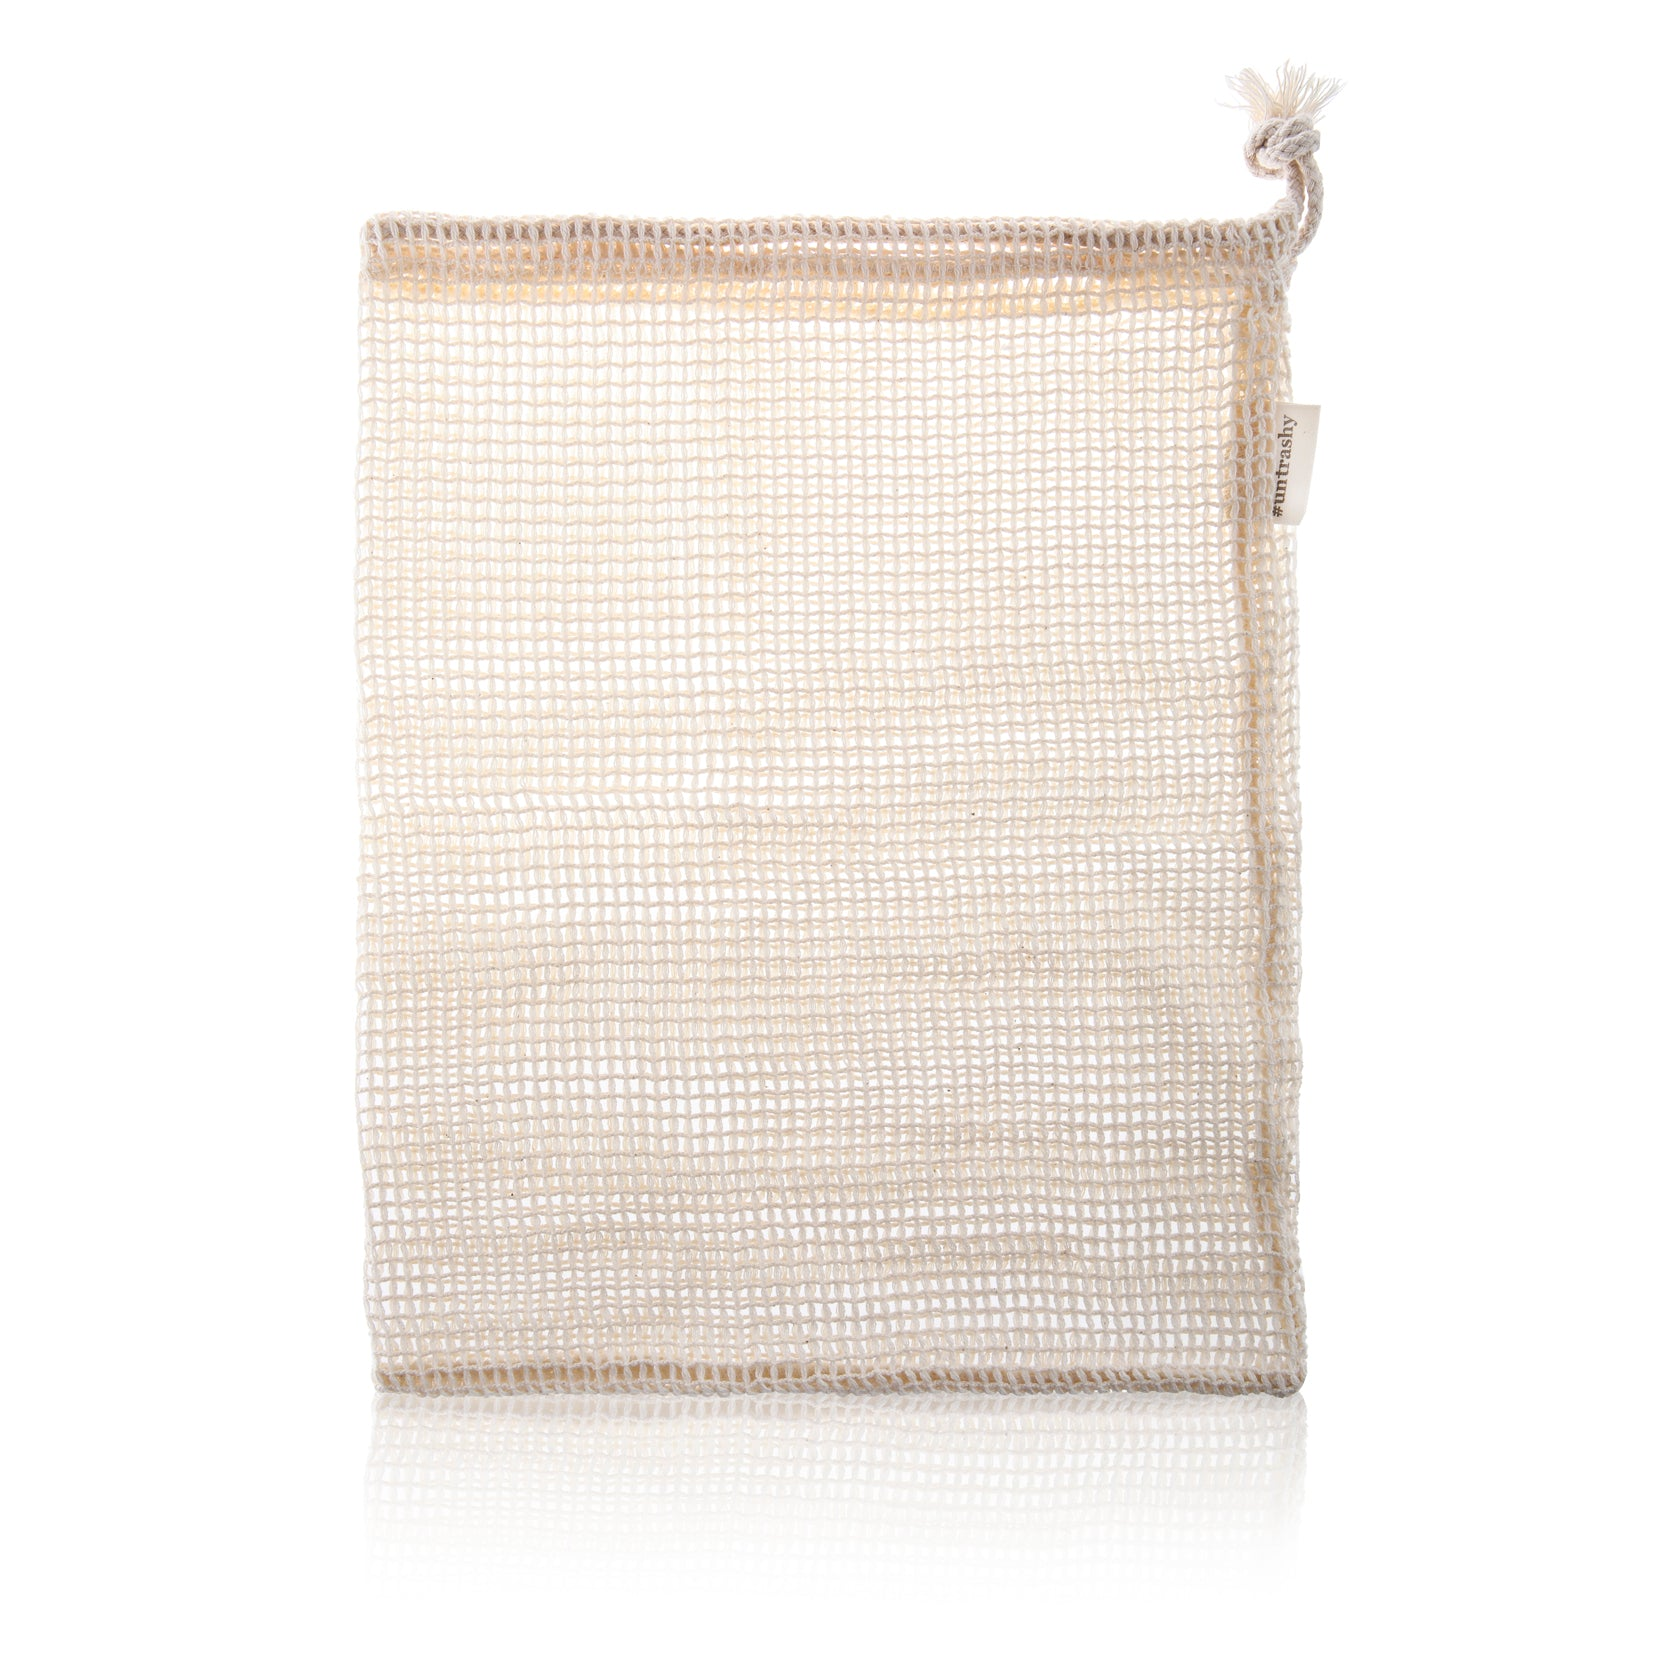 Organic cotton mesh veggie bag